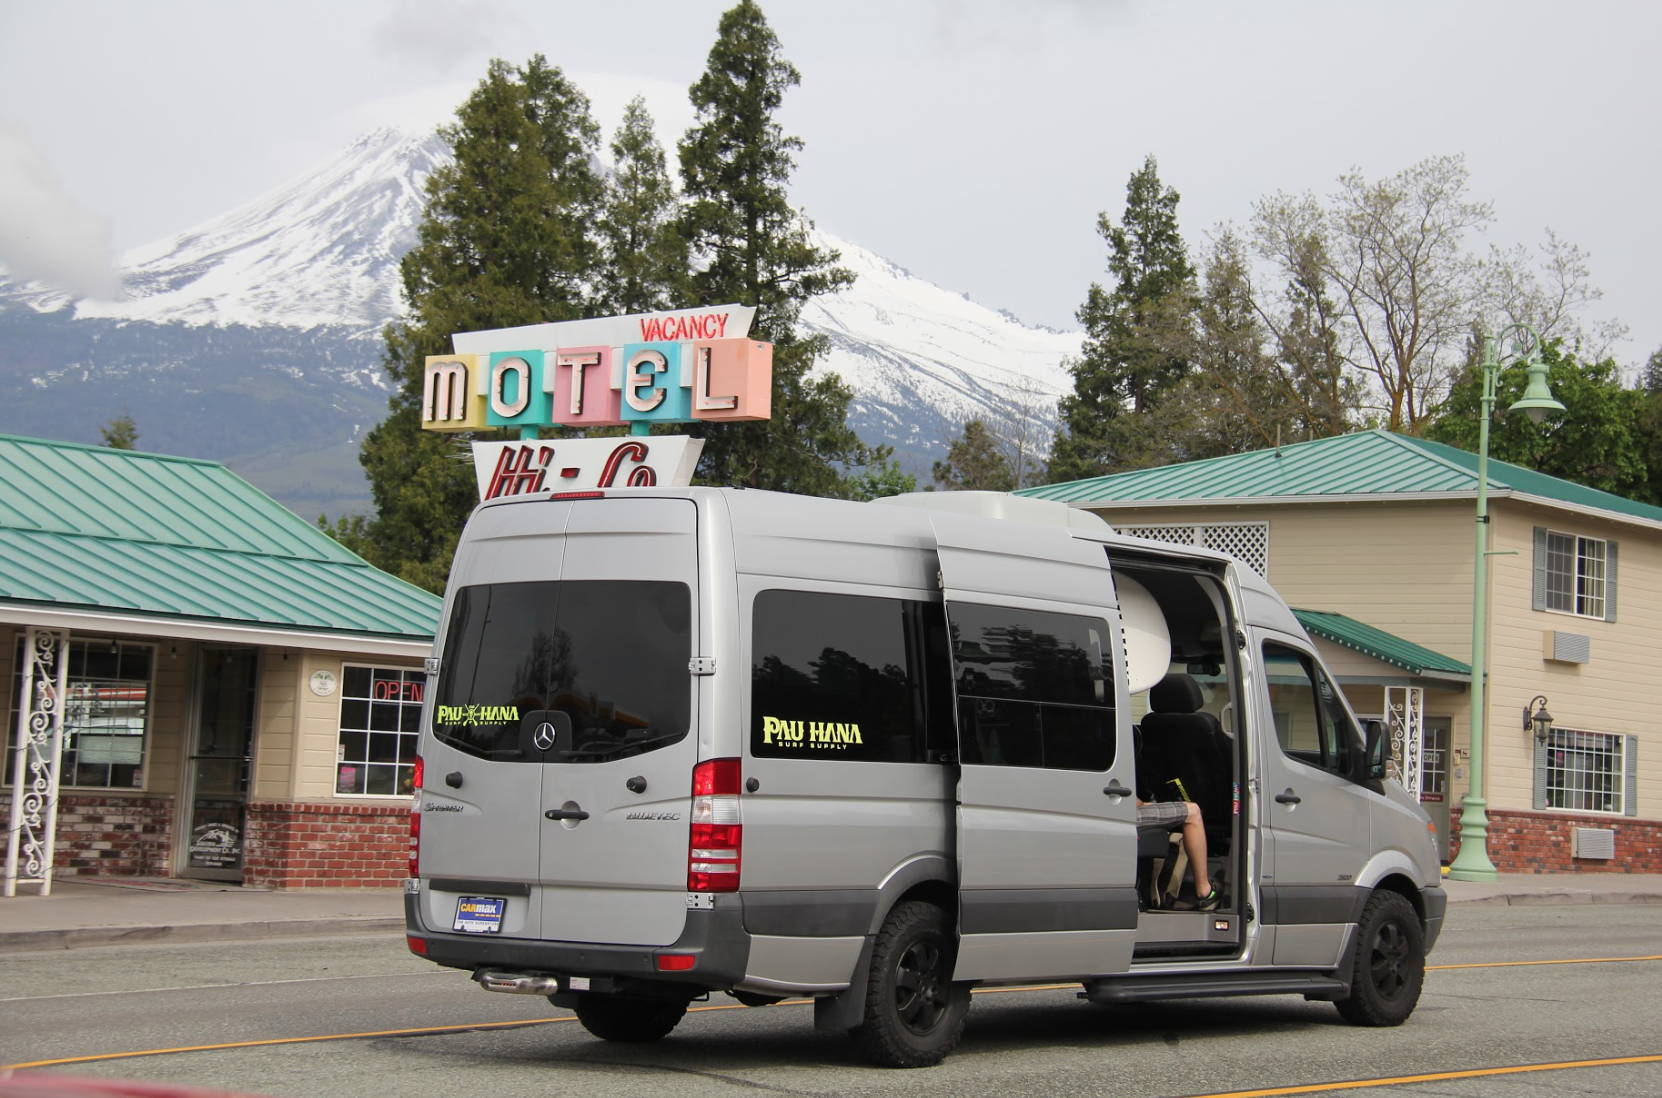 Pau Hana sprinter van passing a motel in bend Oregon